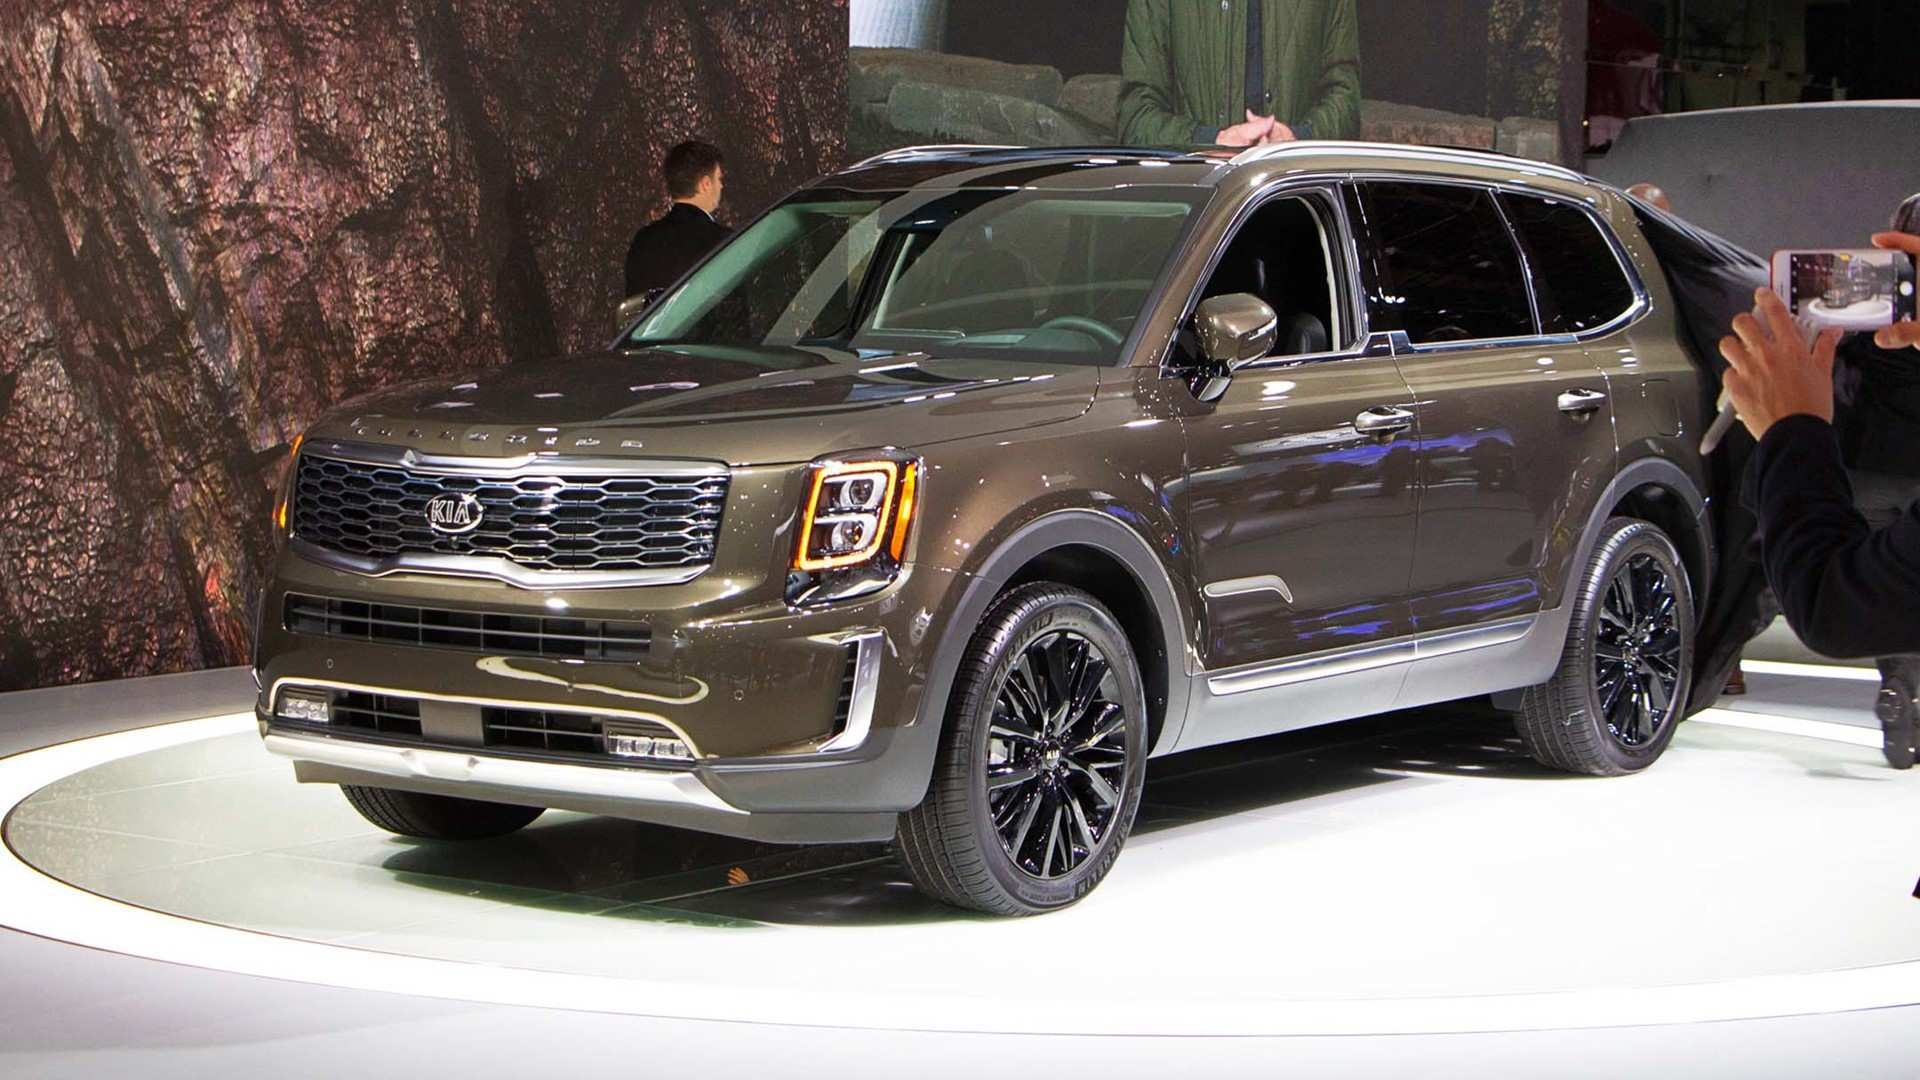 87 Gallery of When Does The 2020 Kia Telluride Come Out Performance with When Does The 2020 Kia Telluride Come Out